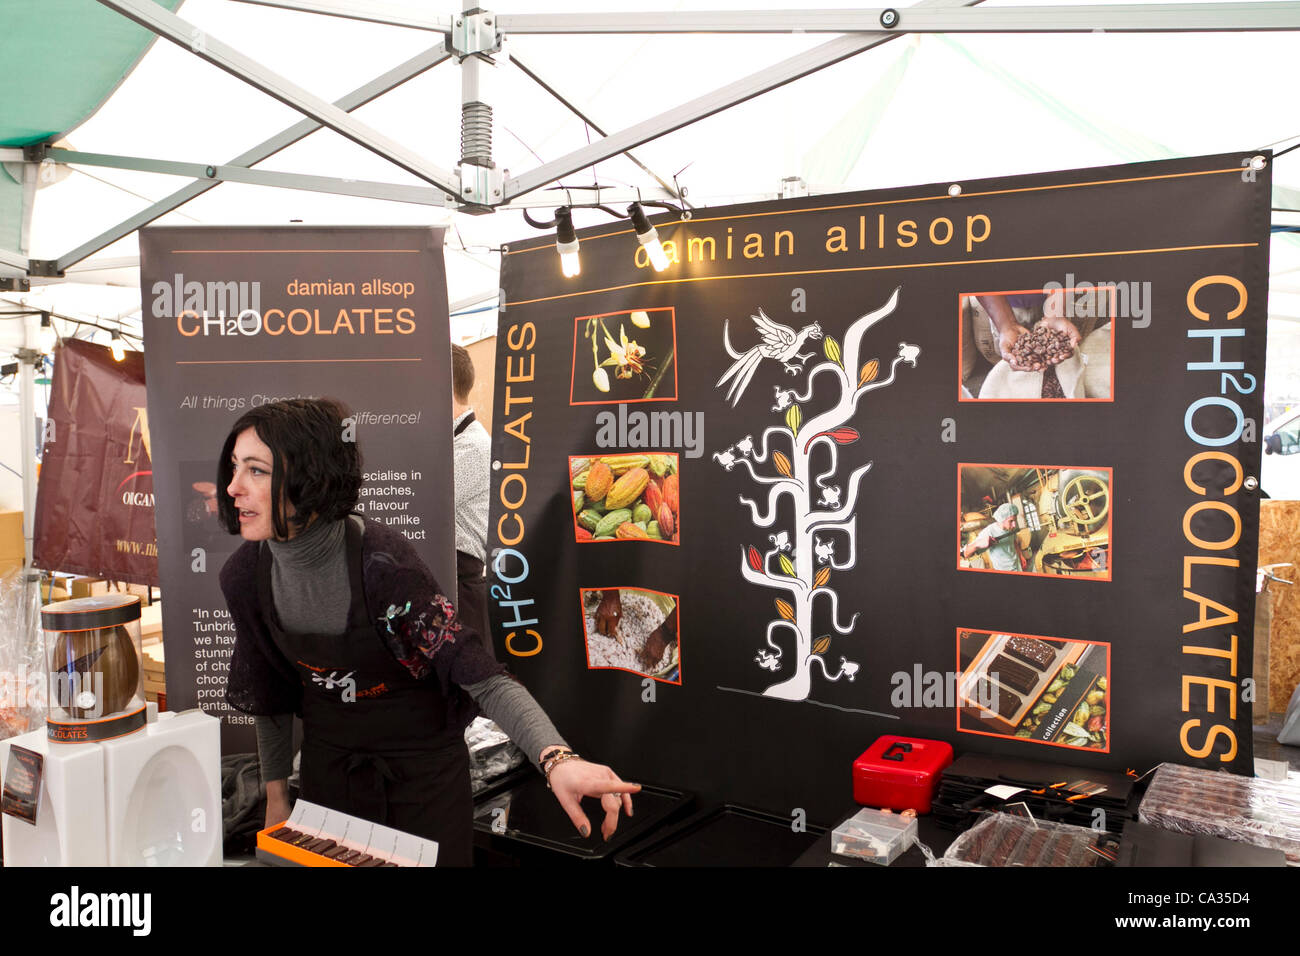 London, UK, 30032012. 'Damian Allsop ch2occolates' stall at the Chocolate Festival, Southbank Centre Square, - Stock Image